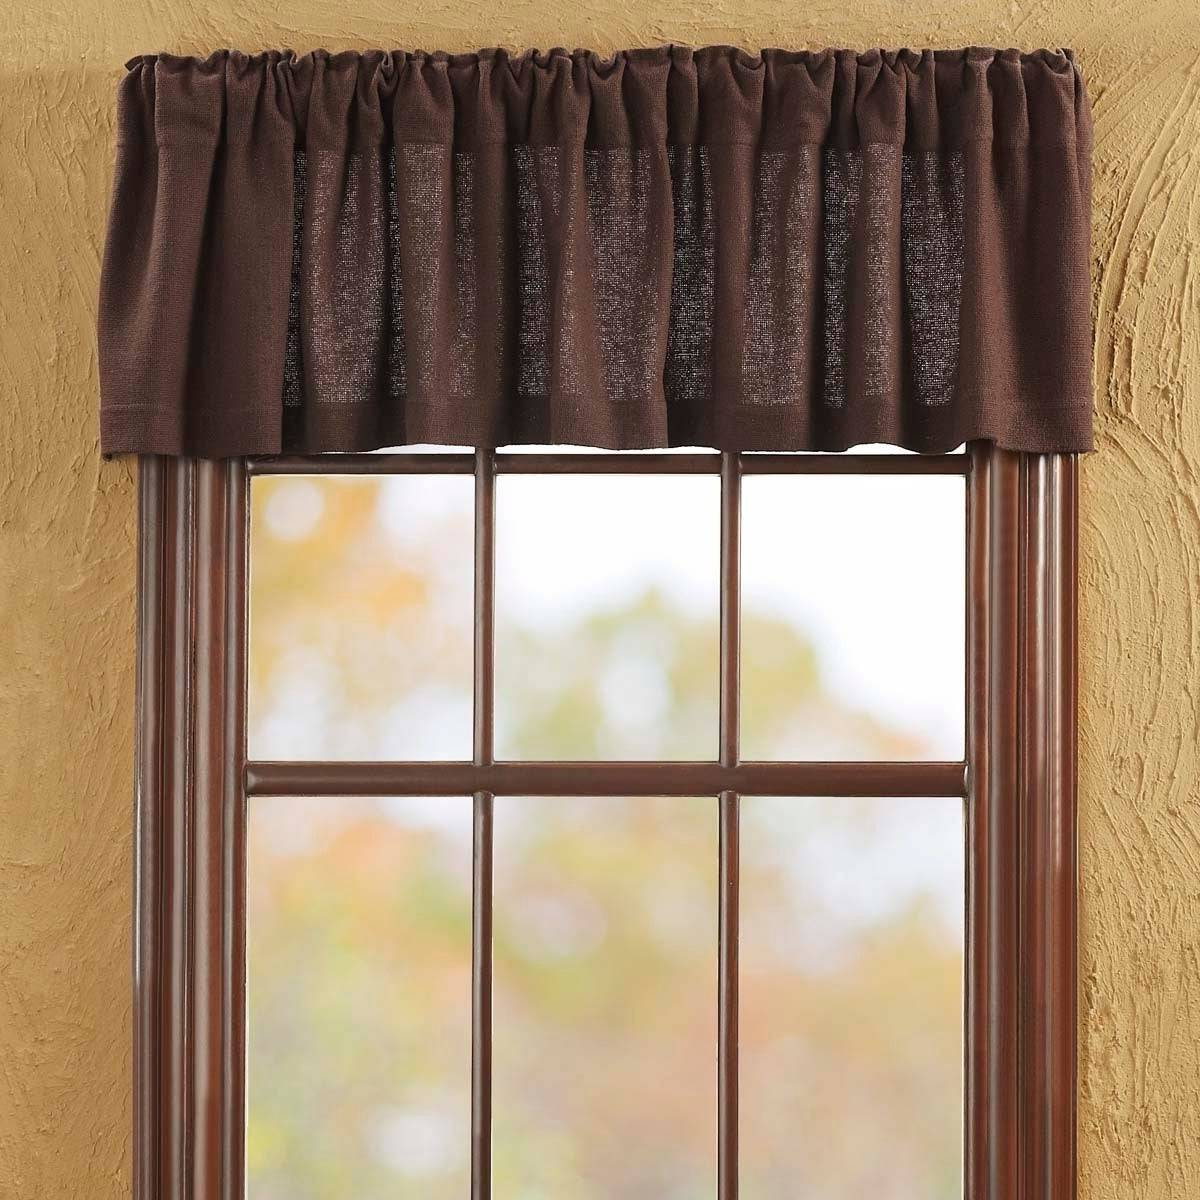 Most Recent Rod Pocket Cotton Striped Lace Cotton Burlap Kitchen Curtains Pertaining To Decorating Exciting Burlap Valance Curtains Yard Kitchen (View 16 of 20)